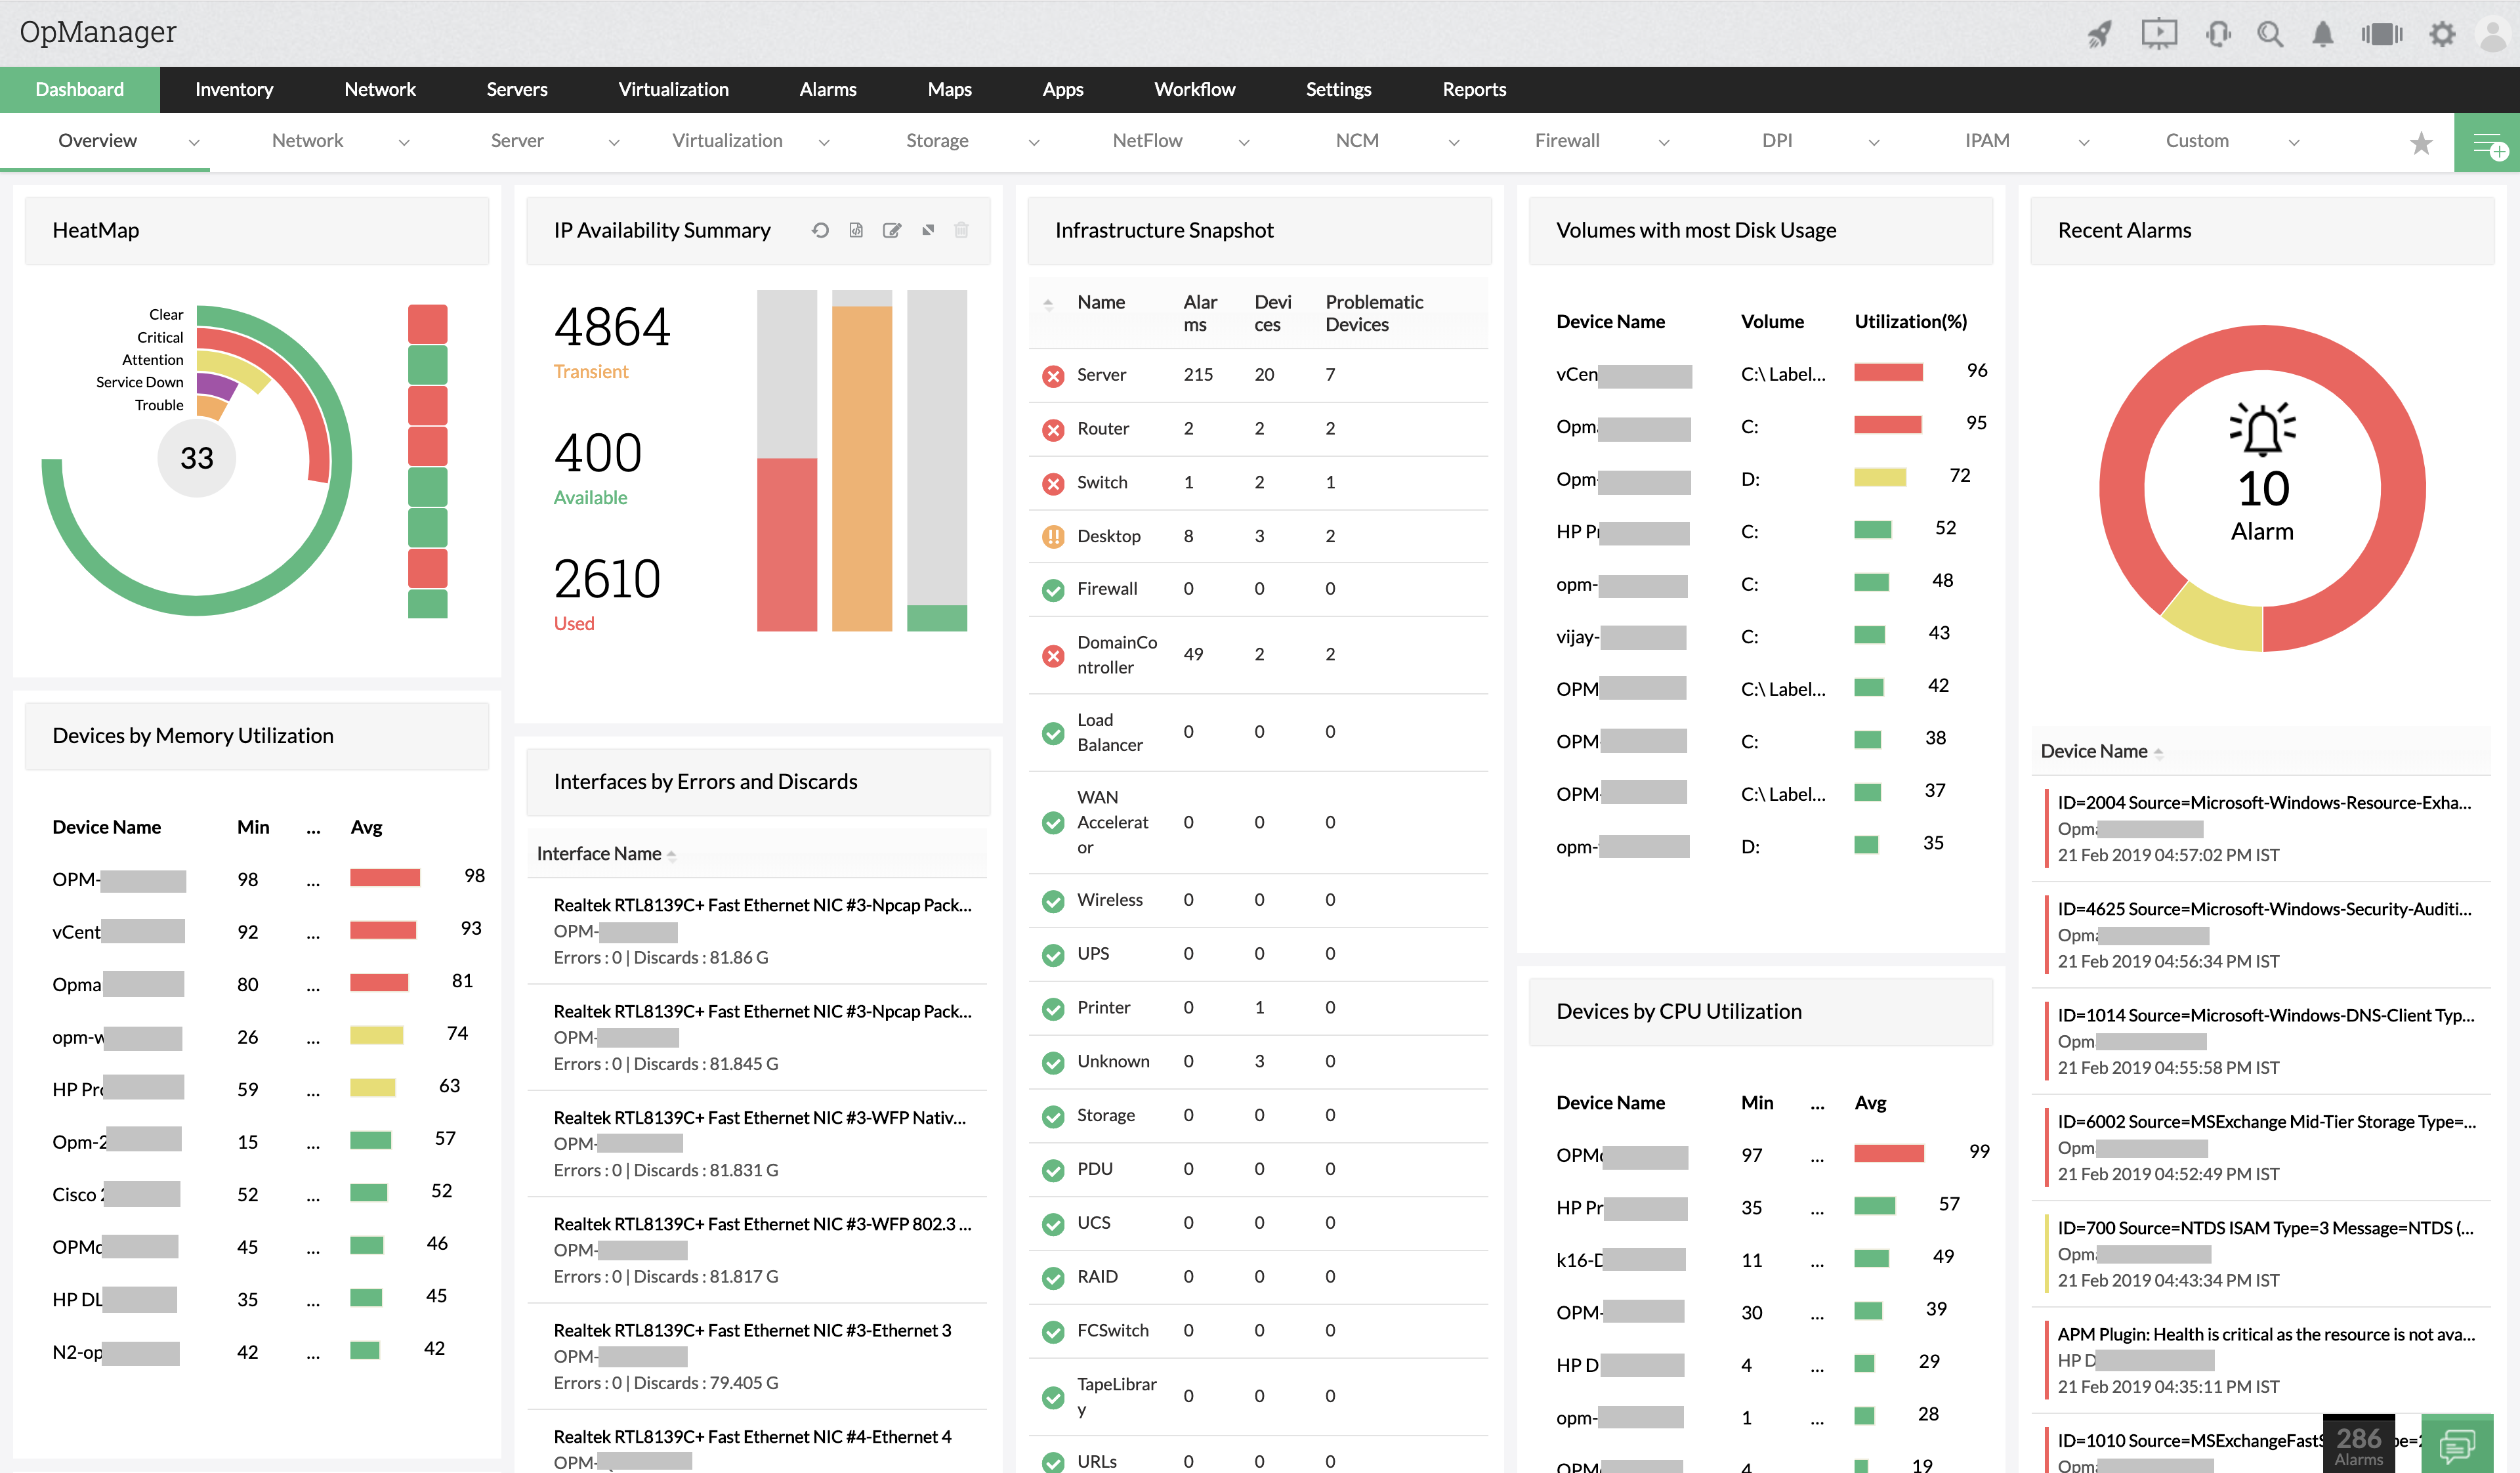 Network Management System Dashboard - ManageEngine OpManager